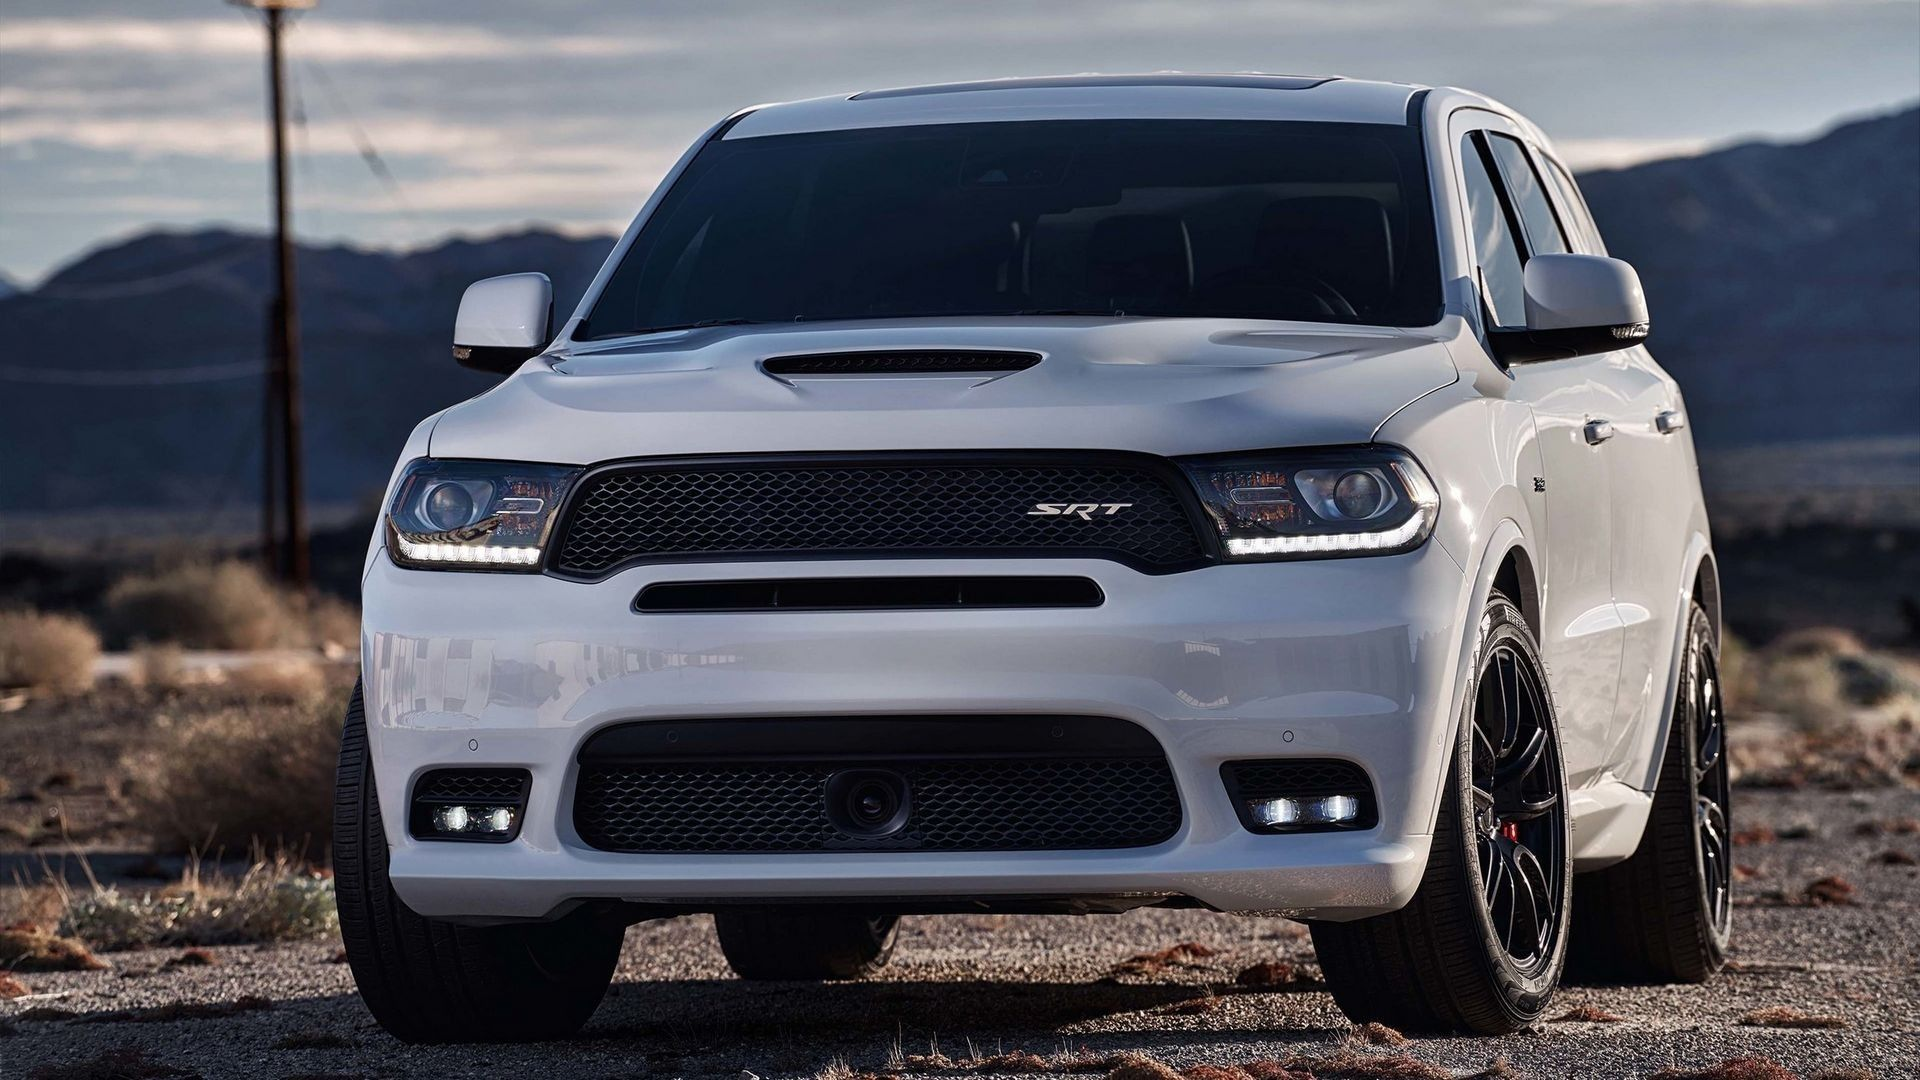 Dodge Durango Rt Horsepower What I Wish Everyone Knew About Dodge Durango Rt Horsepower In 2021 Dodge Durango Dodge Best Pickup Truck